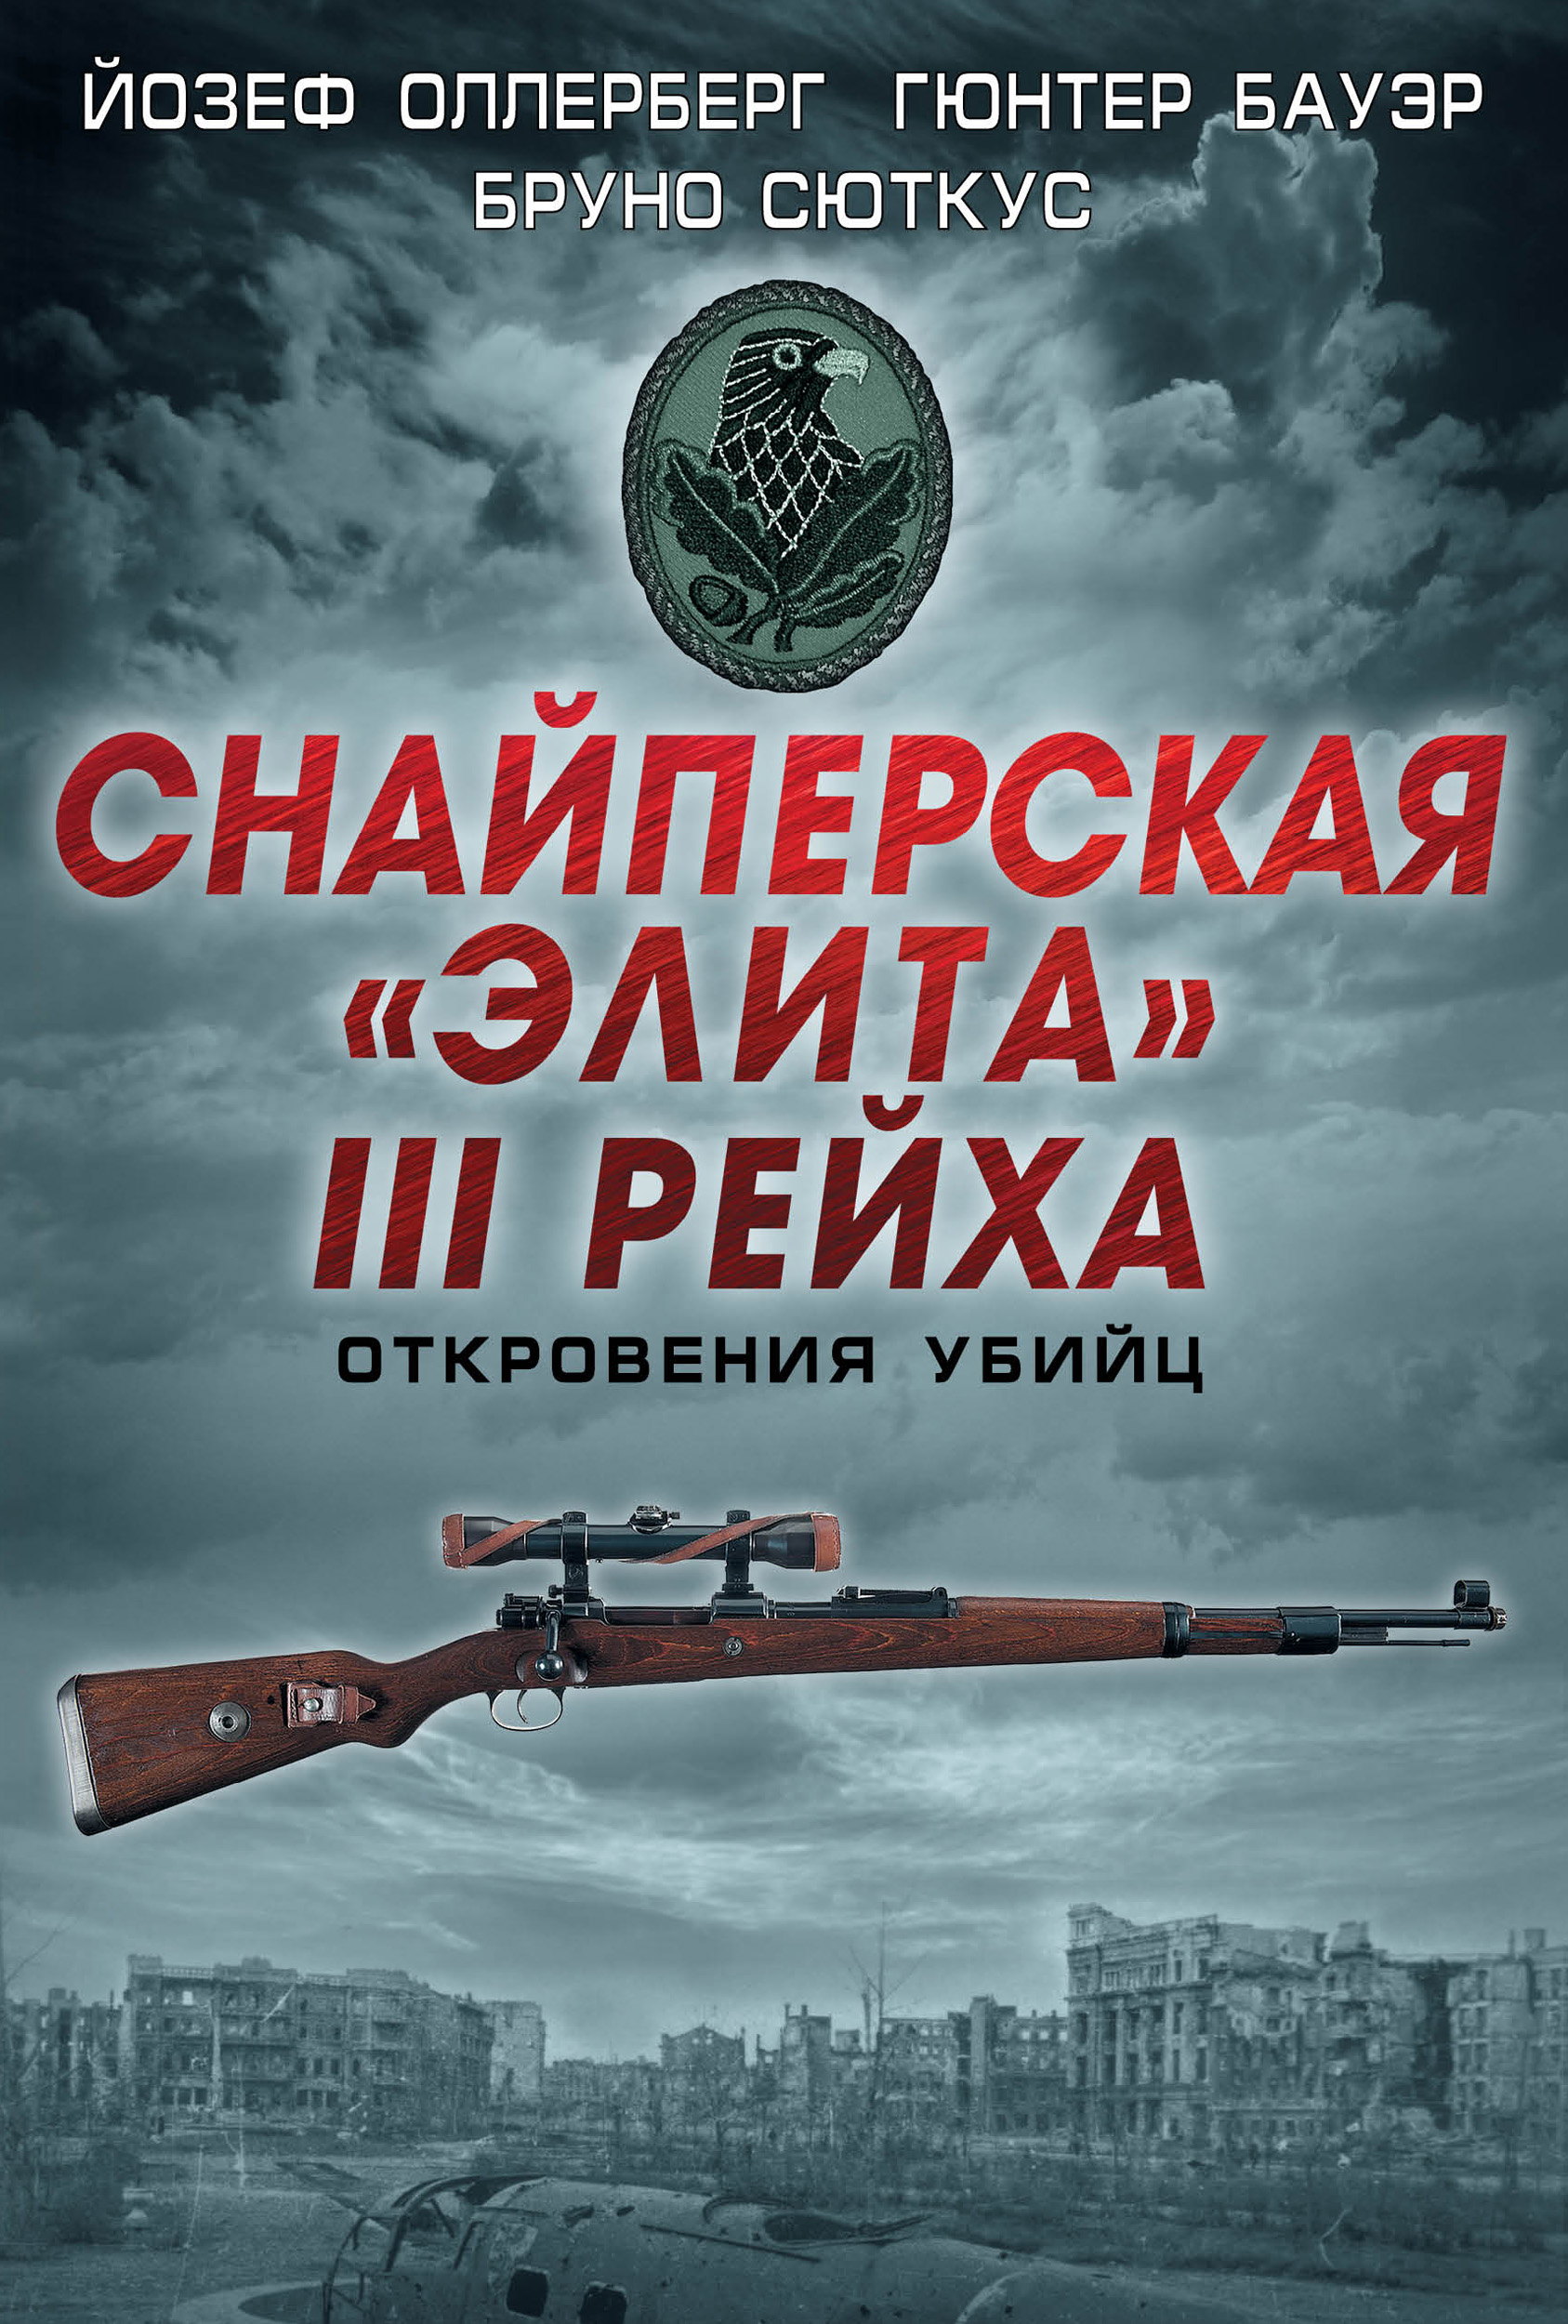 Йозеф Оллерберг Снайперская «элита» III Рейха. Откровения убийц (сборник) 2017 new fashion women backpack pu leather girls school bag women casual style shoulder bag backpack for girls backpack